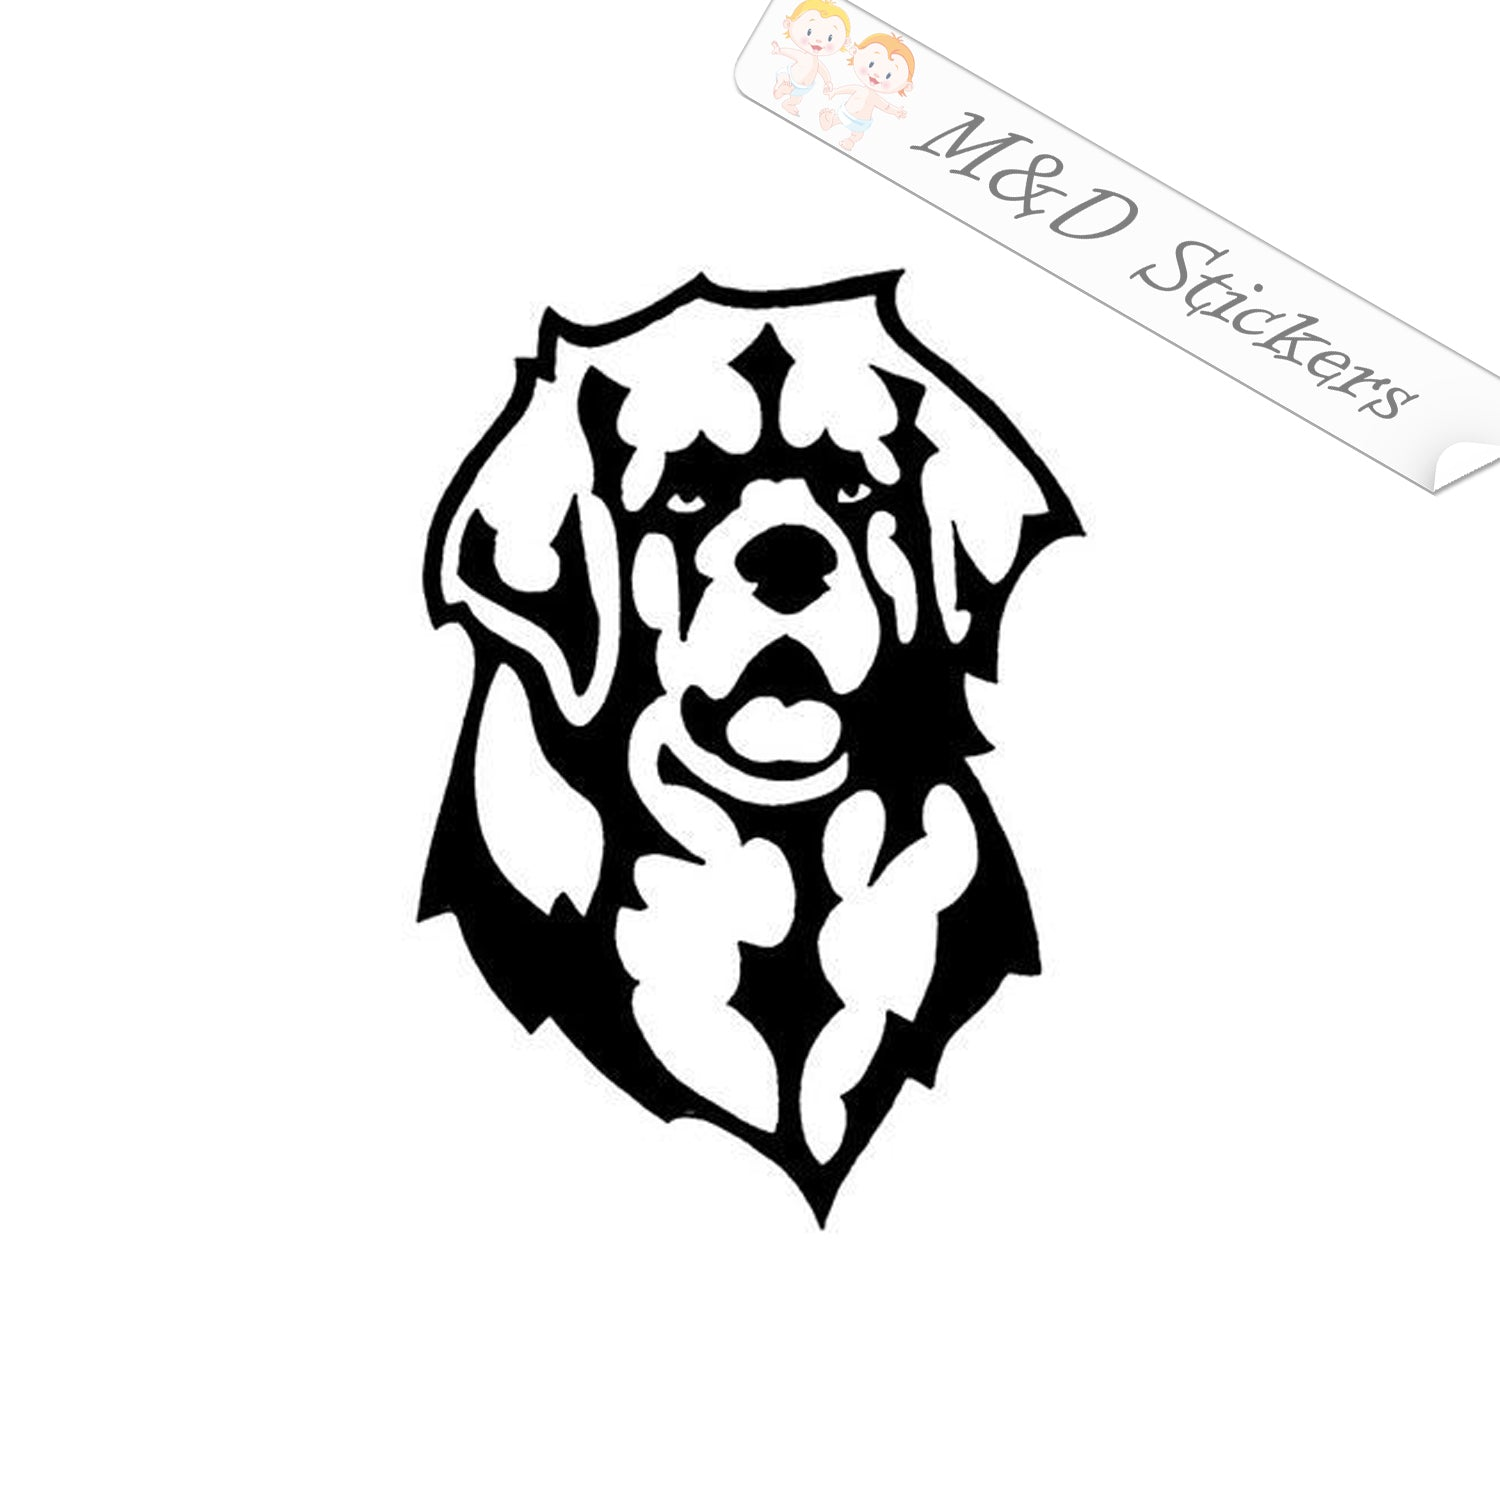 High Quality Adhesive Vinyl Window Decal Sticker Leonberger On Board DC474OB